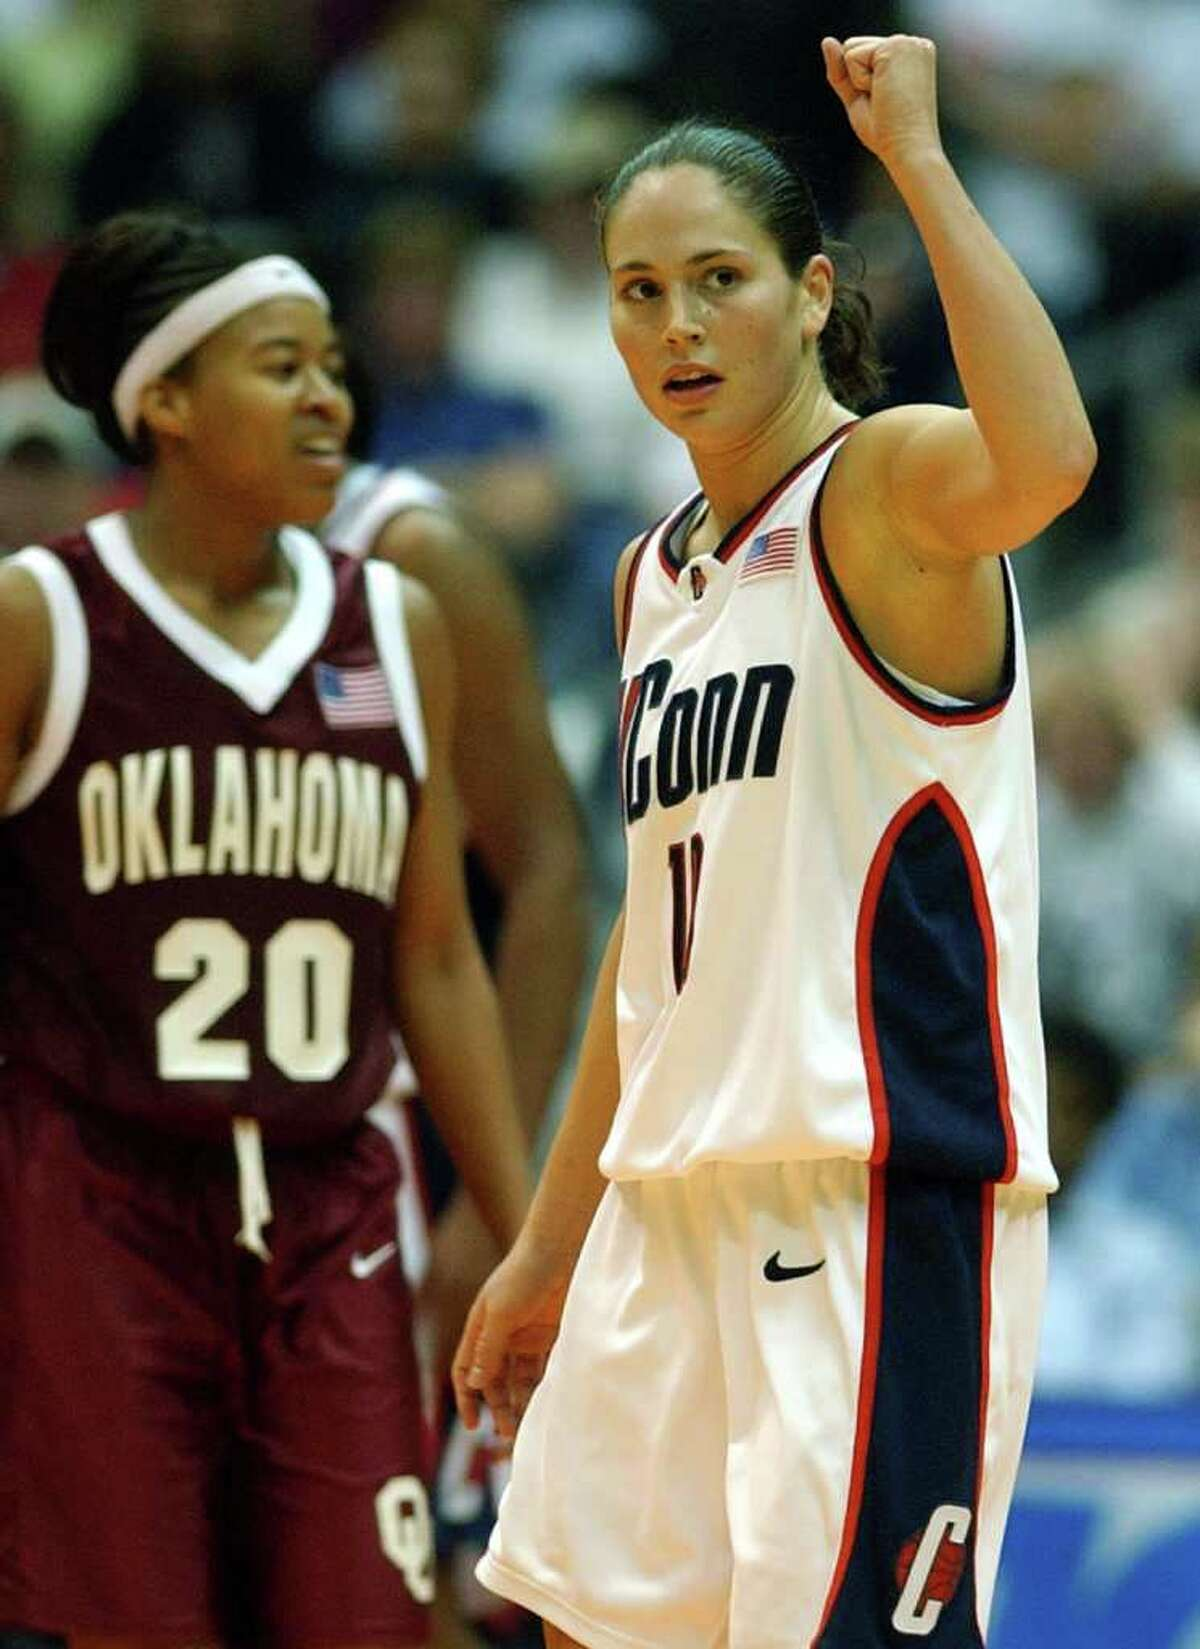 Pictured: UConn's Sue Bird raises her fist after a good play as OU LaNeishea Caulfield looks on during the second half at the Alamodome in San Antonio on Sunday, Mar. 31, 2002. (Kin Man Hui/staff)